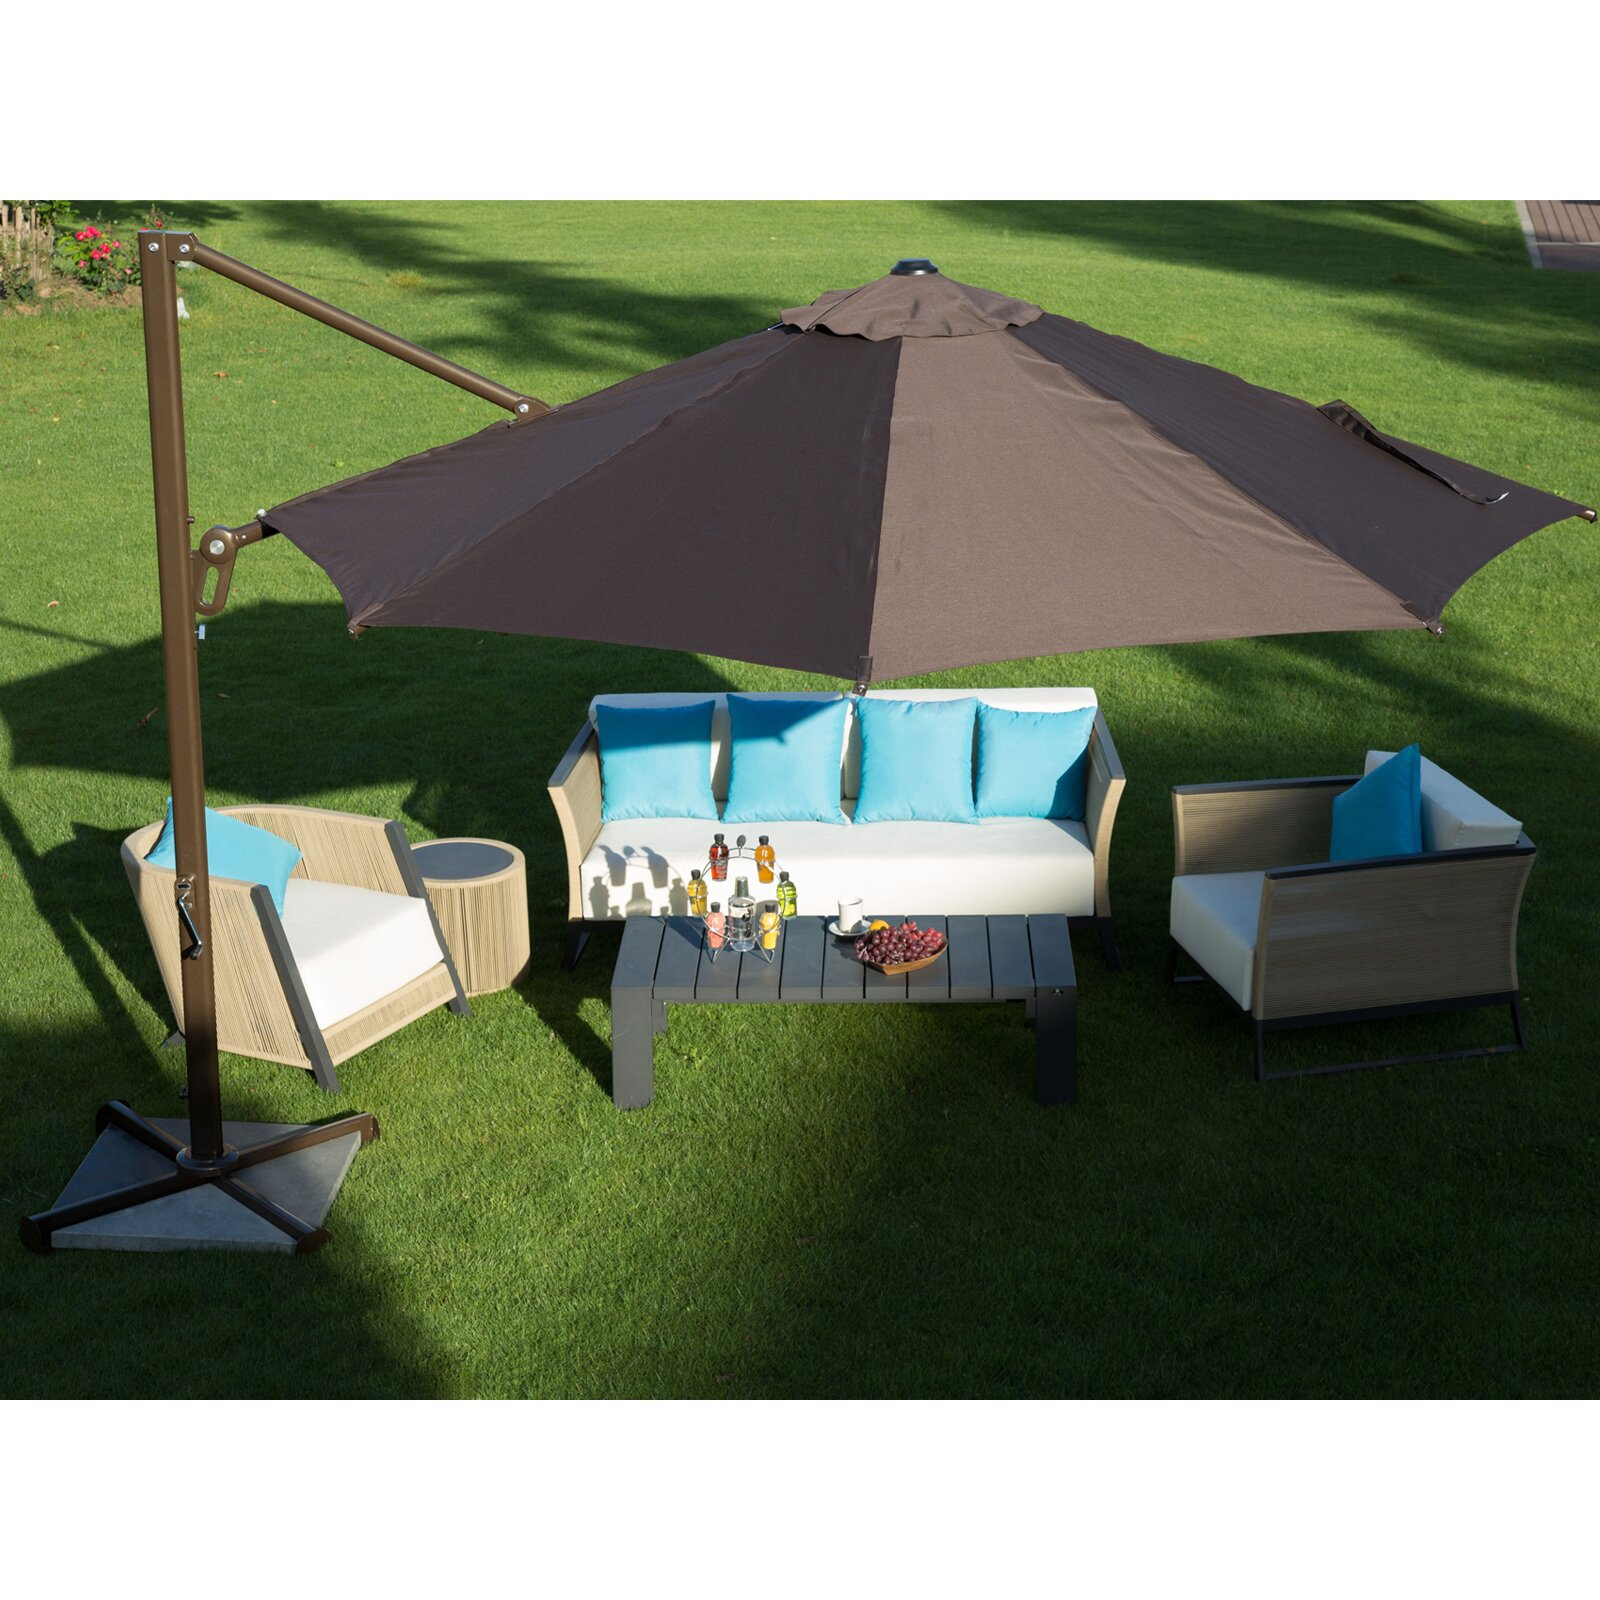 11 Round Cantilever Umbrella